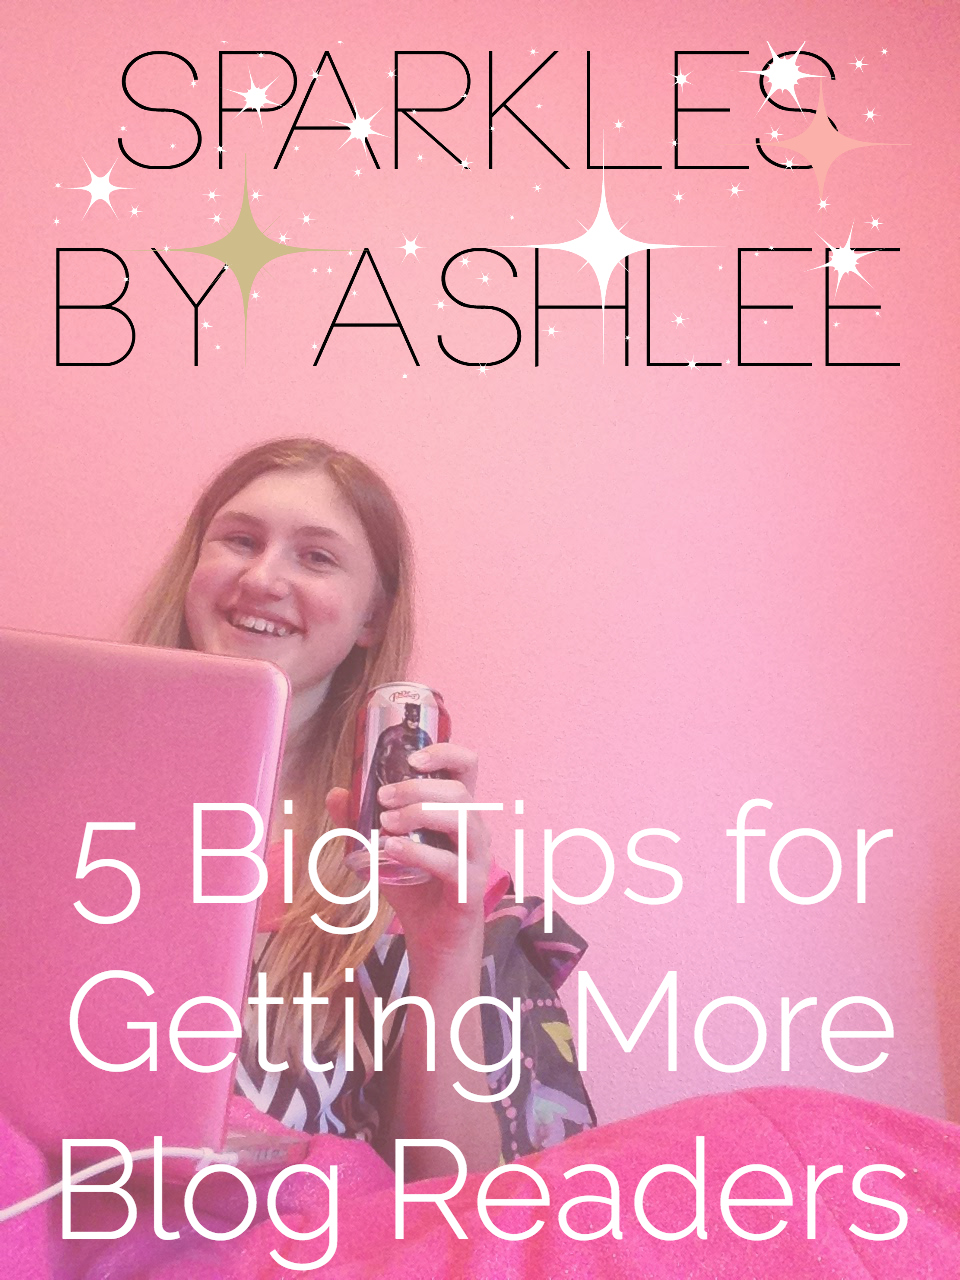 5-Big-Tips-for-Getting-More-Blog-Readers-Sparkles-by-Ashlee.jpg